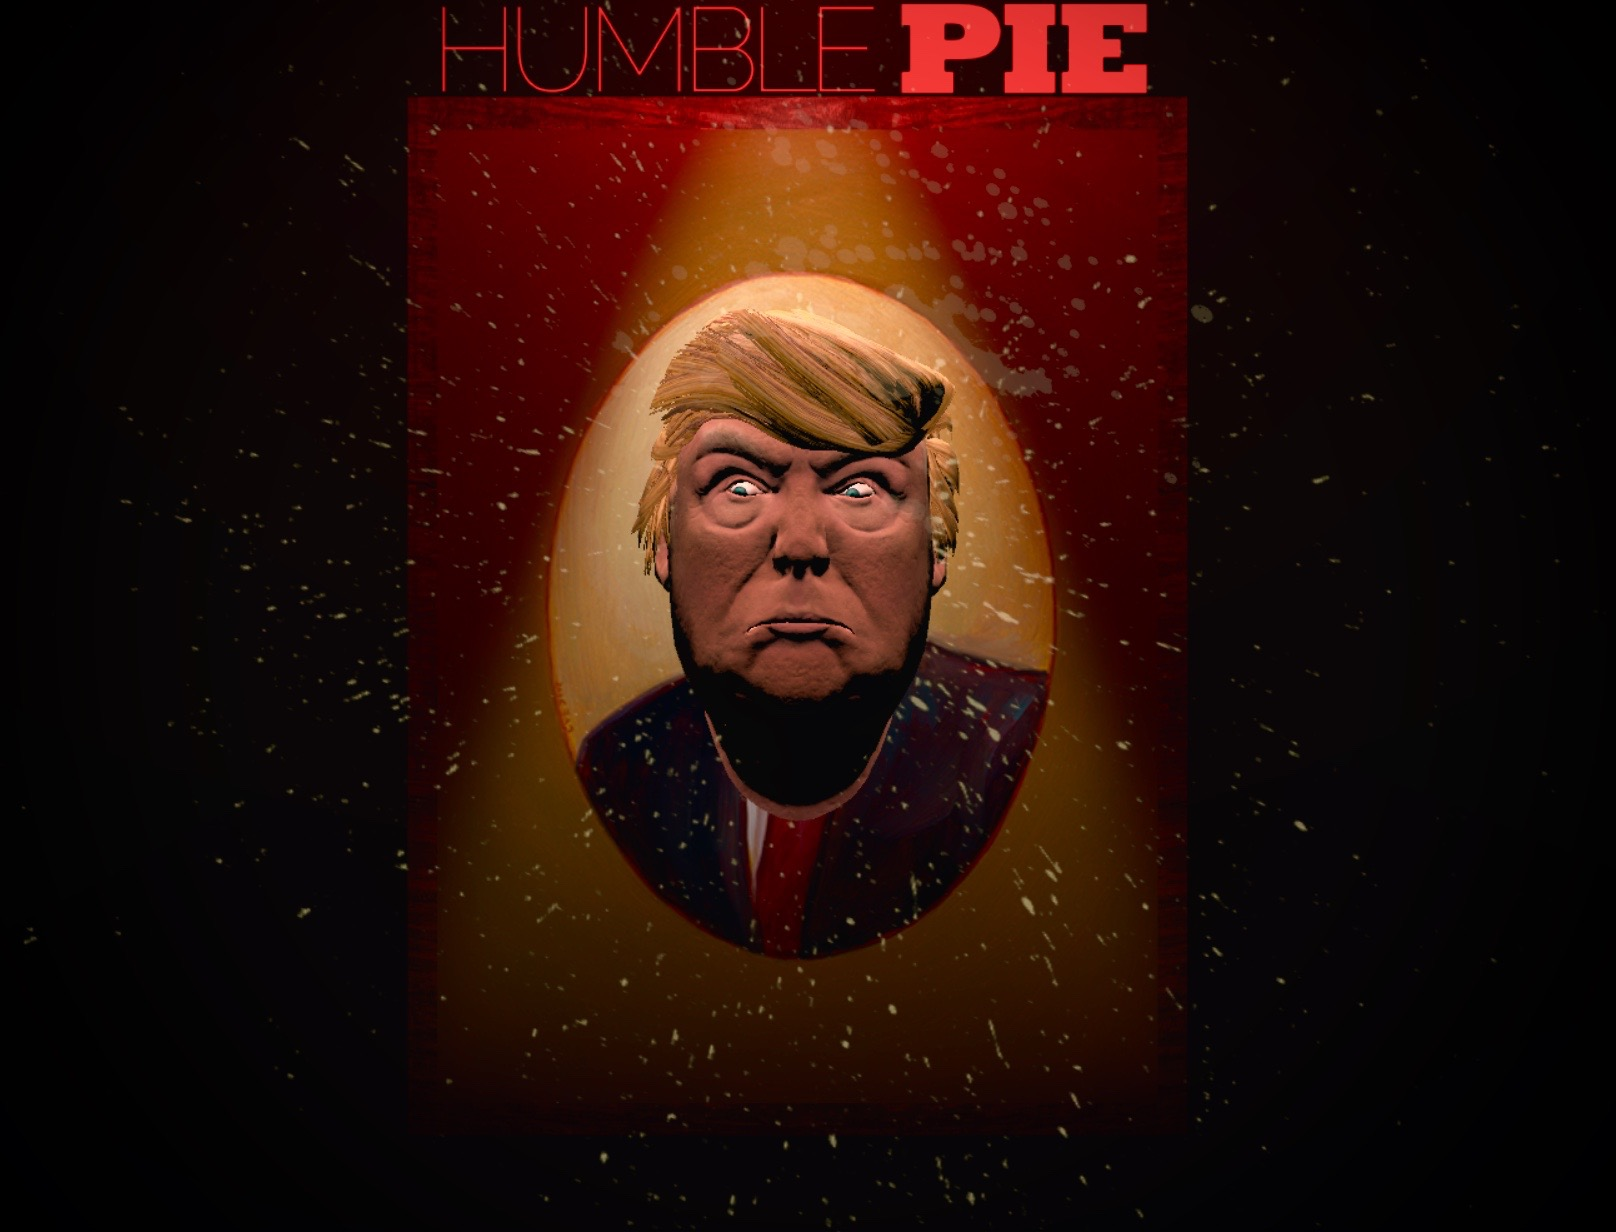 Humble Pie Game